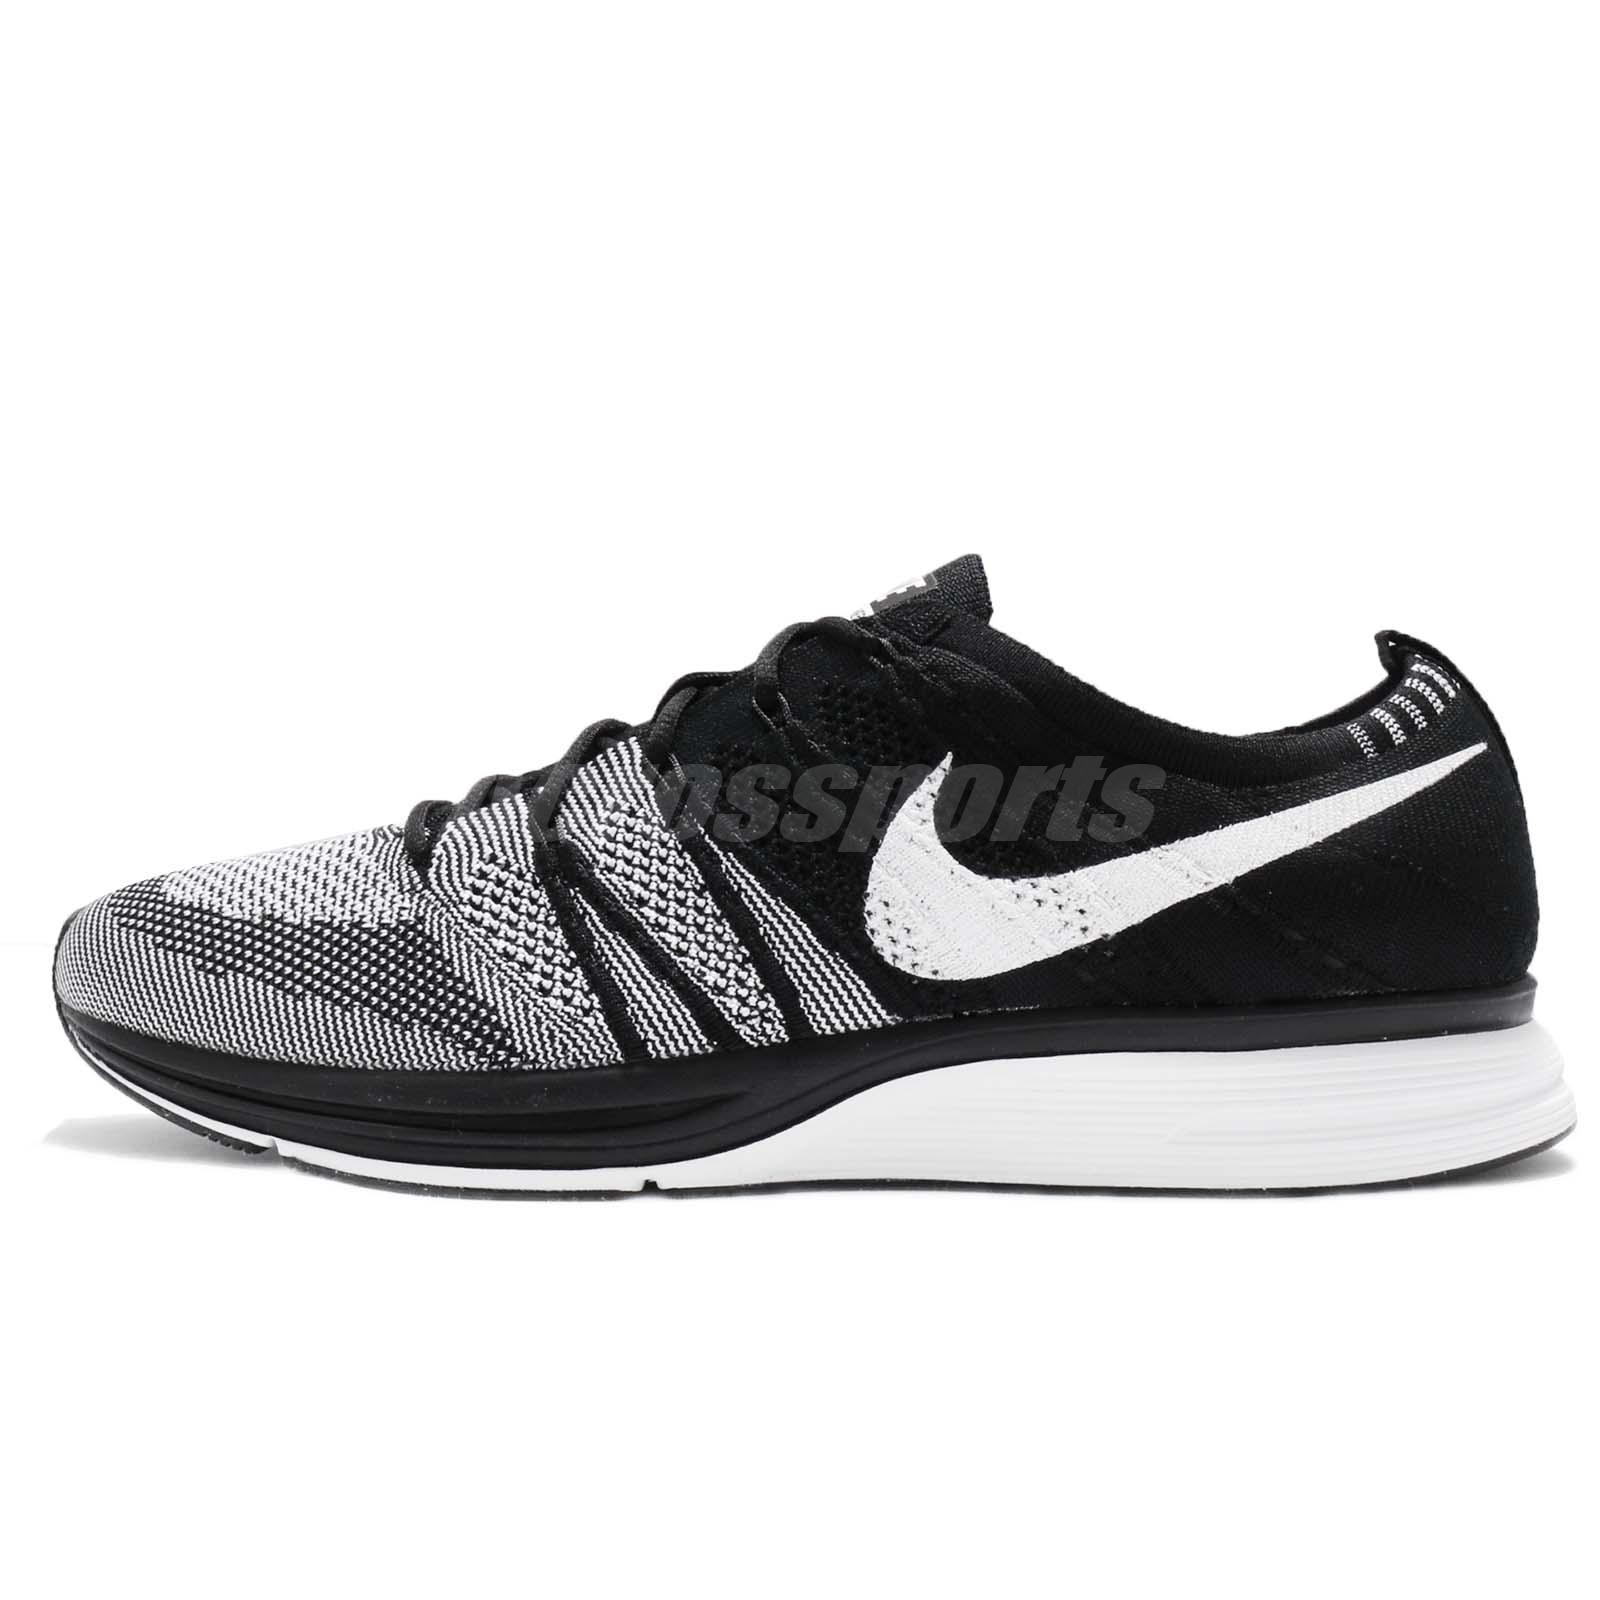 5f4bbef958056 ... clearance nike flyknit trainer oreo og retro black white kanye west men  running ah8396 005 52bf4